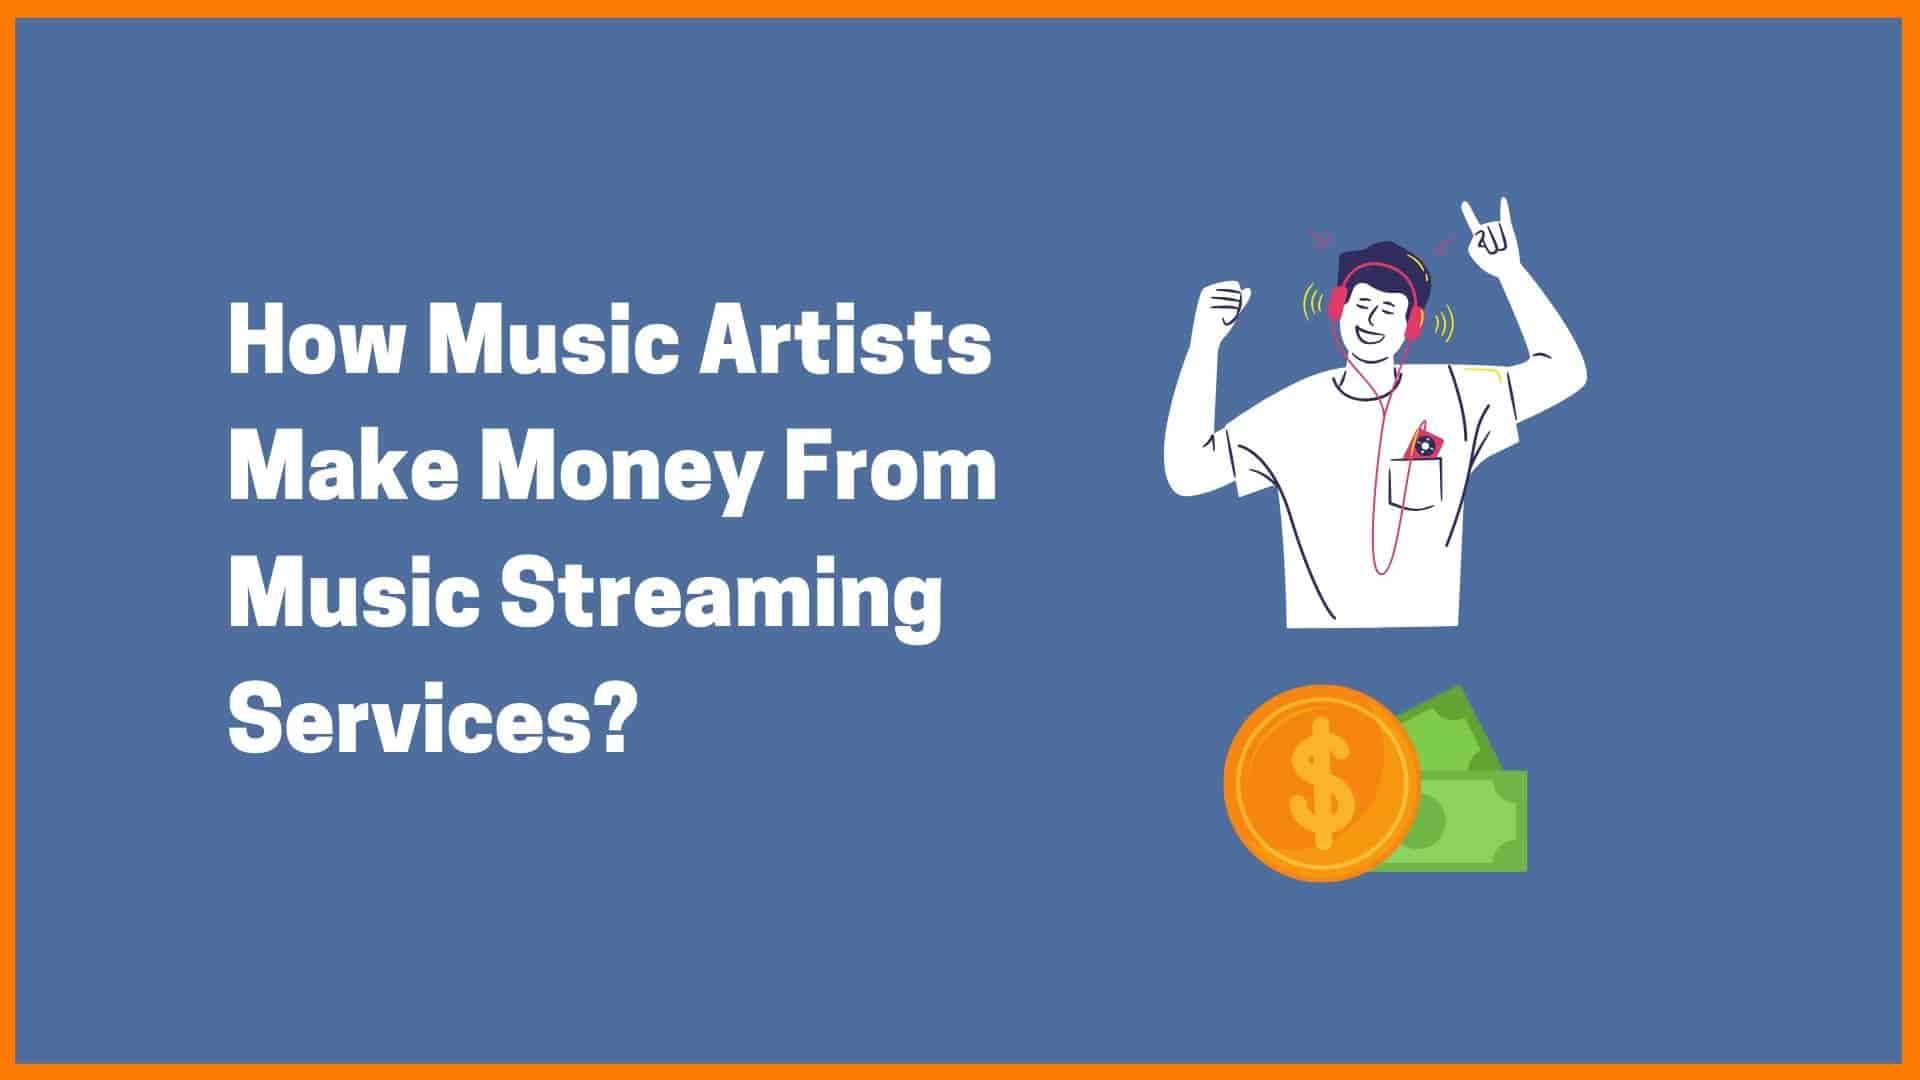 How Do Artists Make Money From Music Streaming Services?